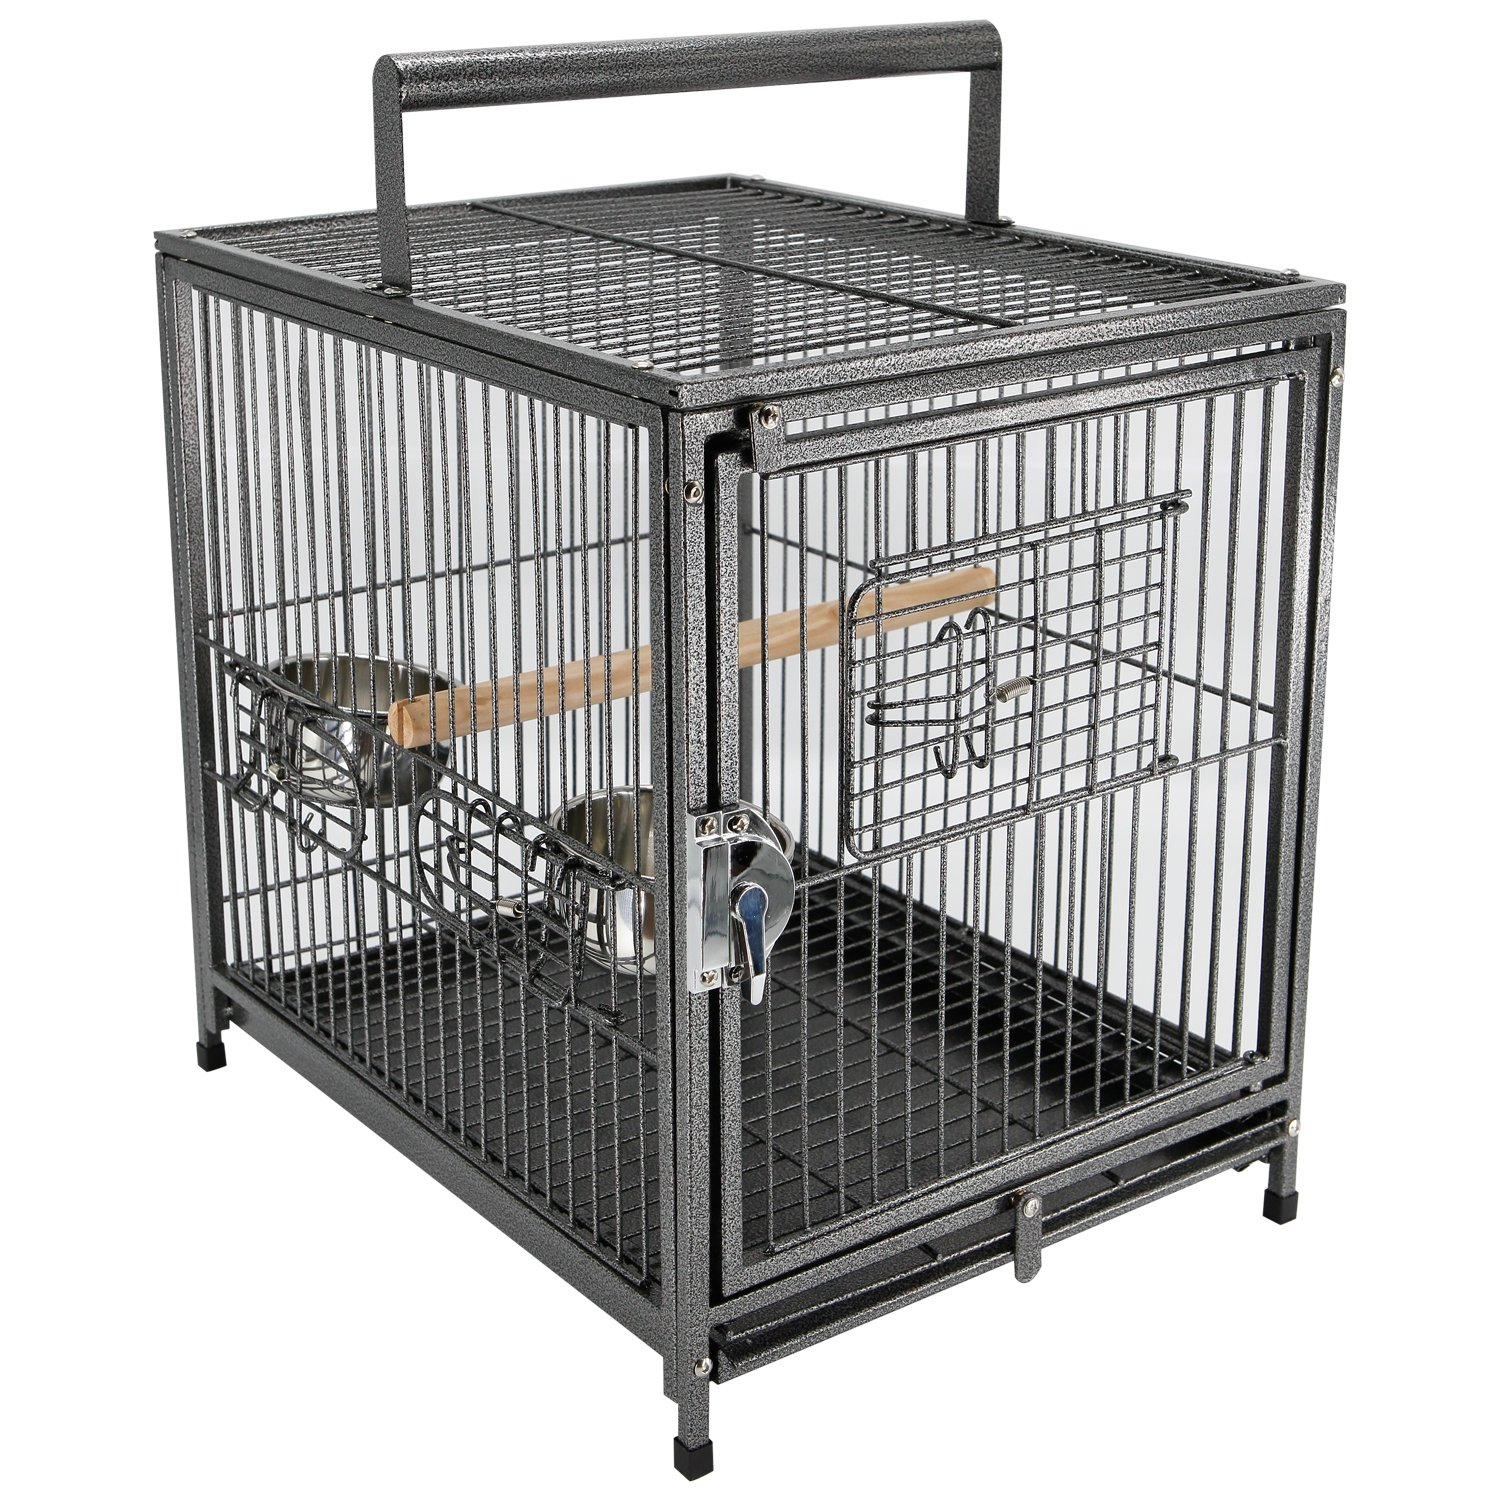 PawHut 22'' Heavy Duty Wrought Iron Travel Bird Cage Carrier with Handle Perch and Accessories - Black by PawHut